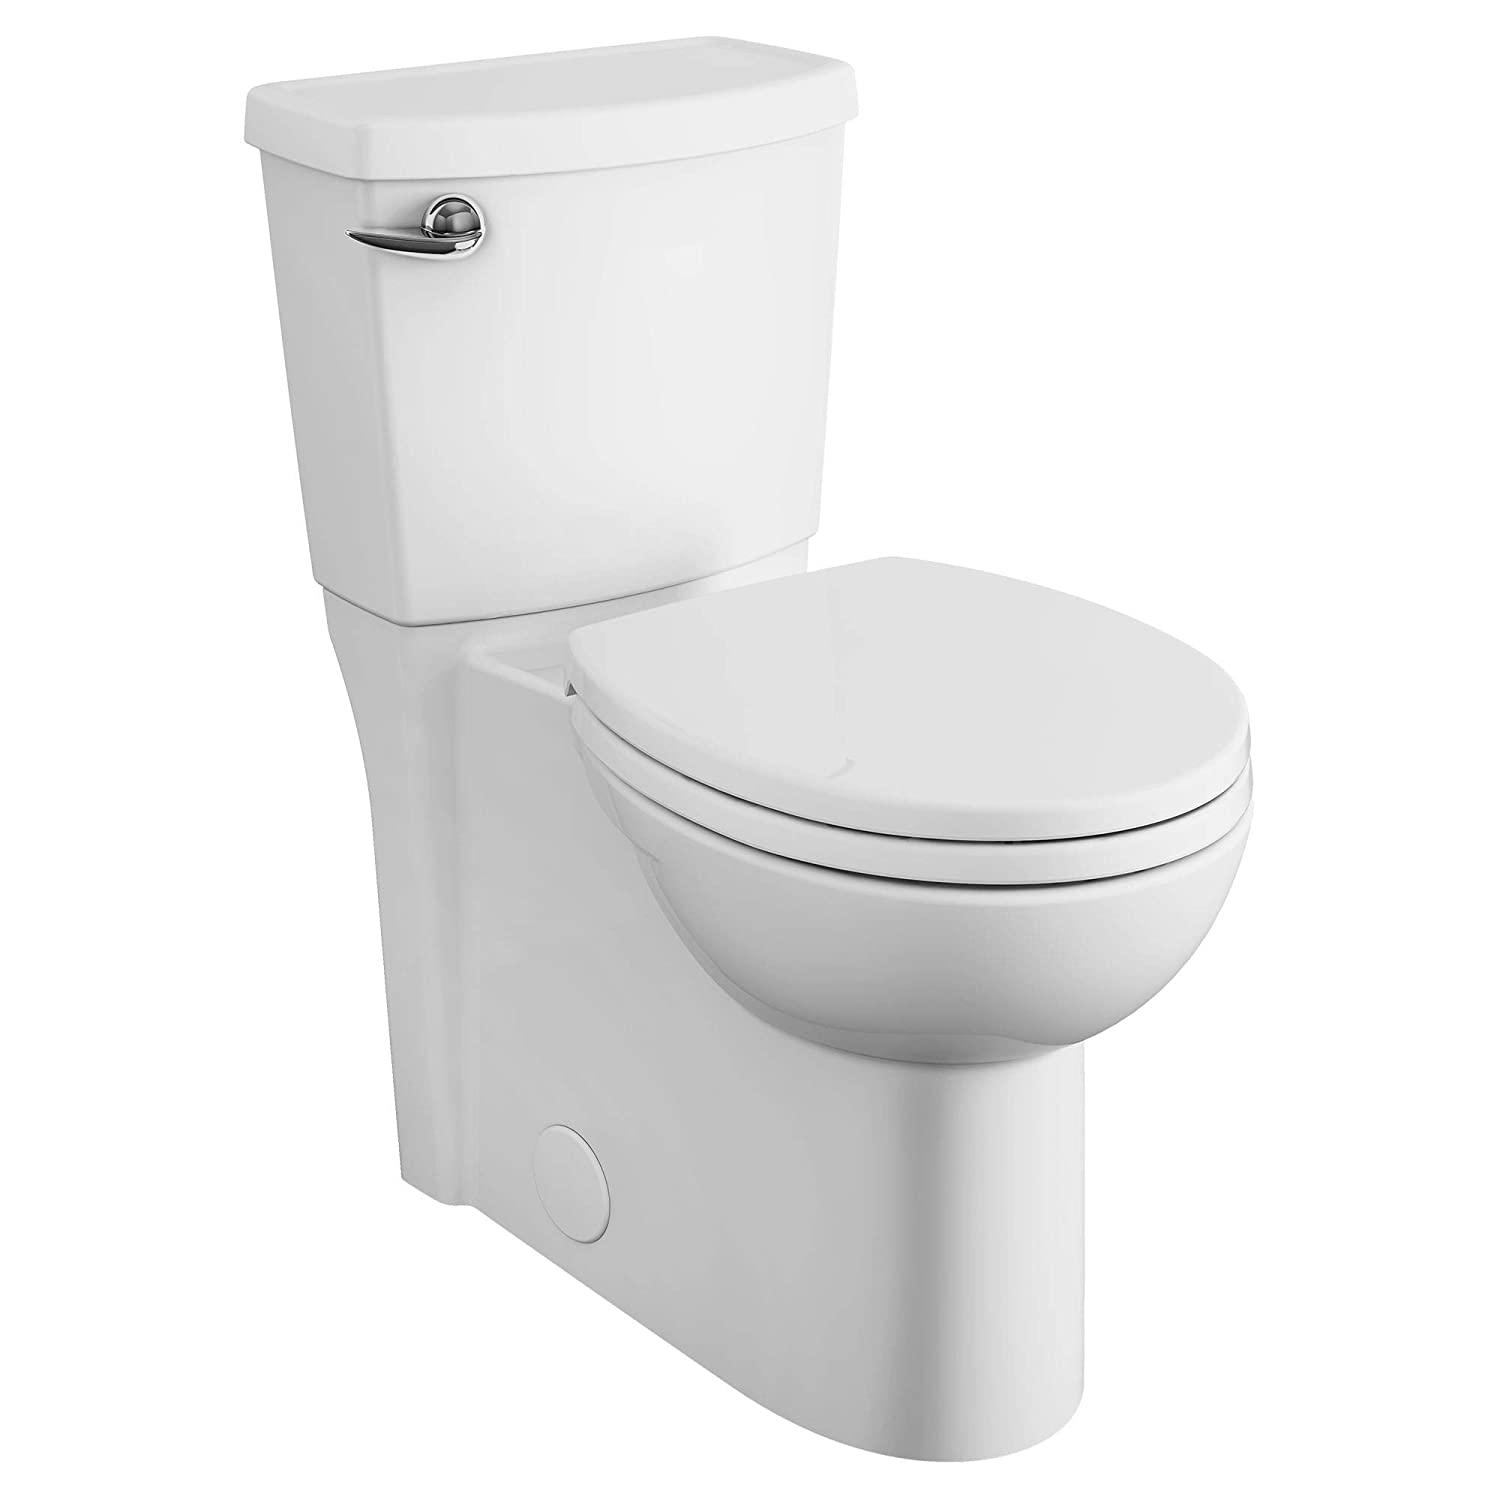 Top 5 Best American Standard Toilets Reviews in 2020 5